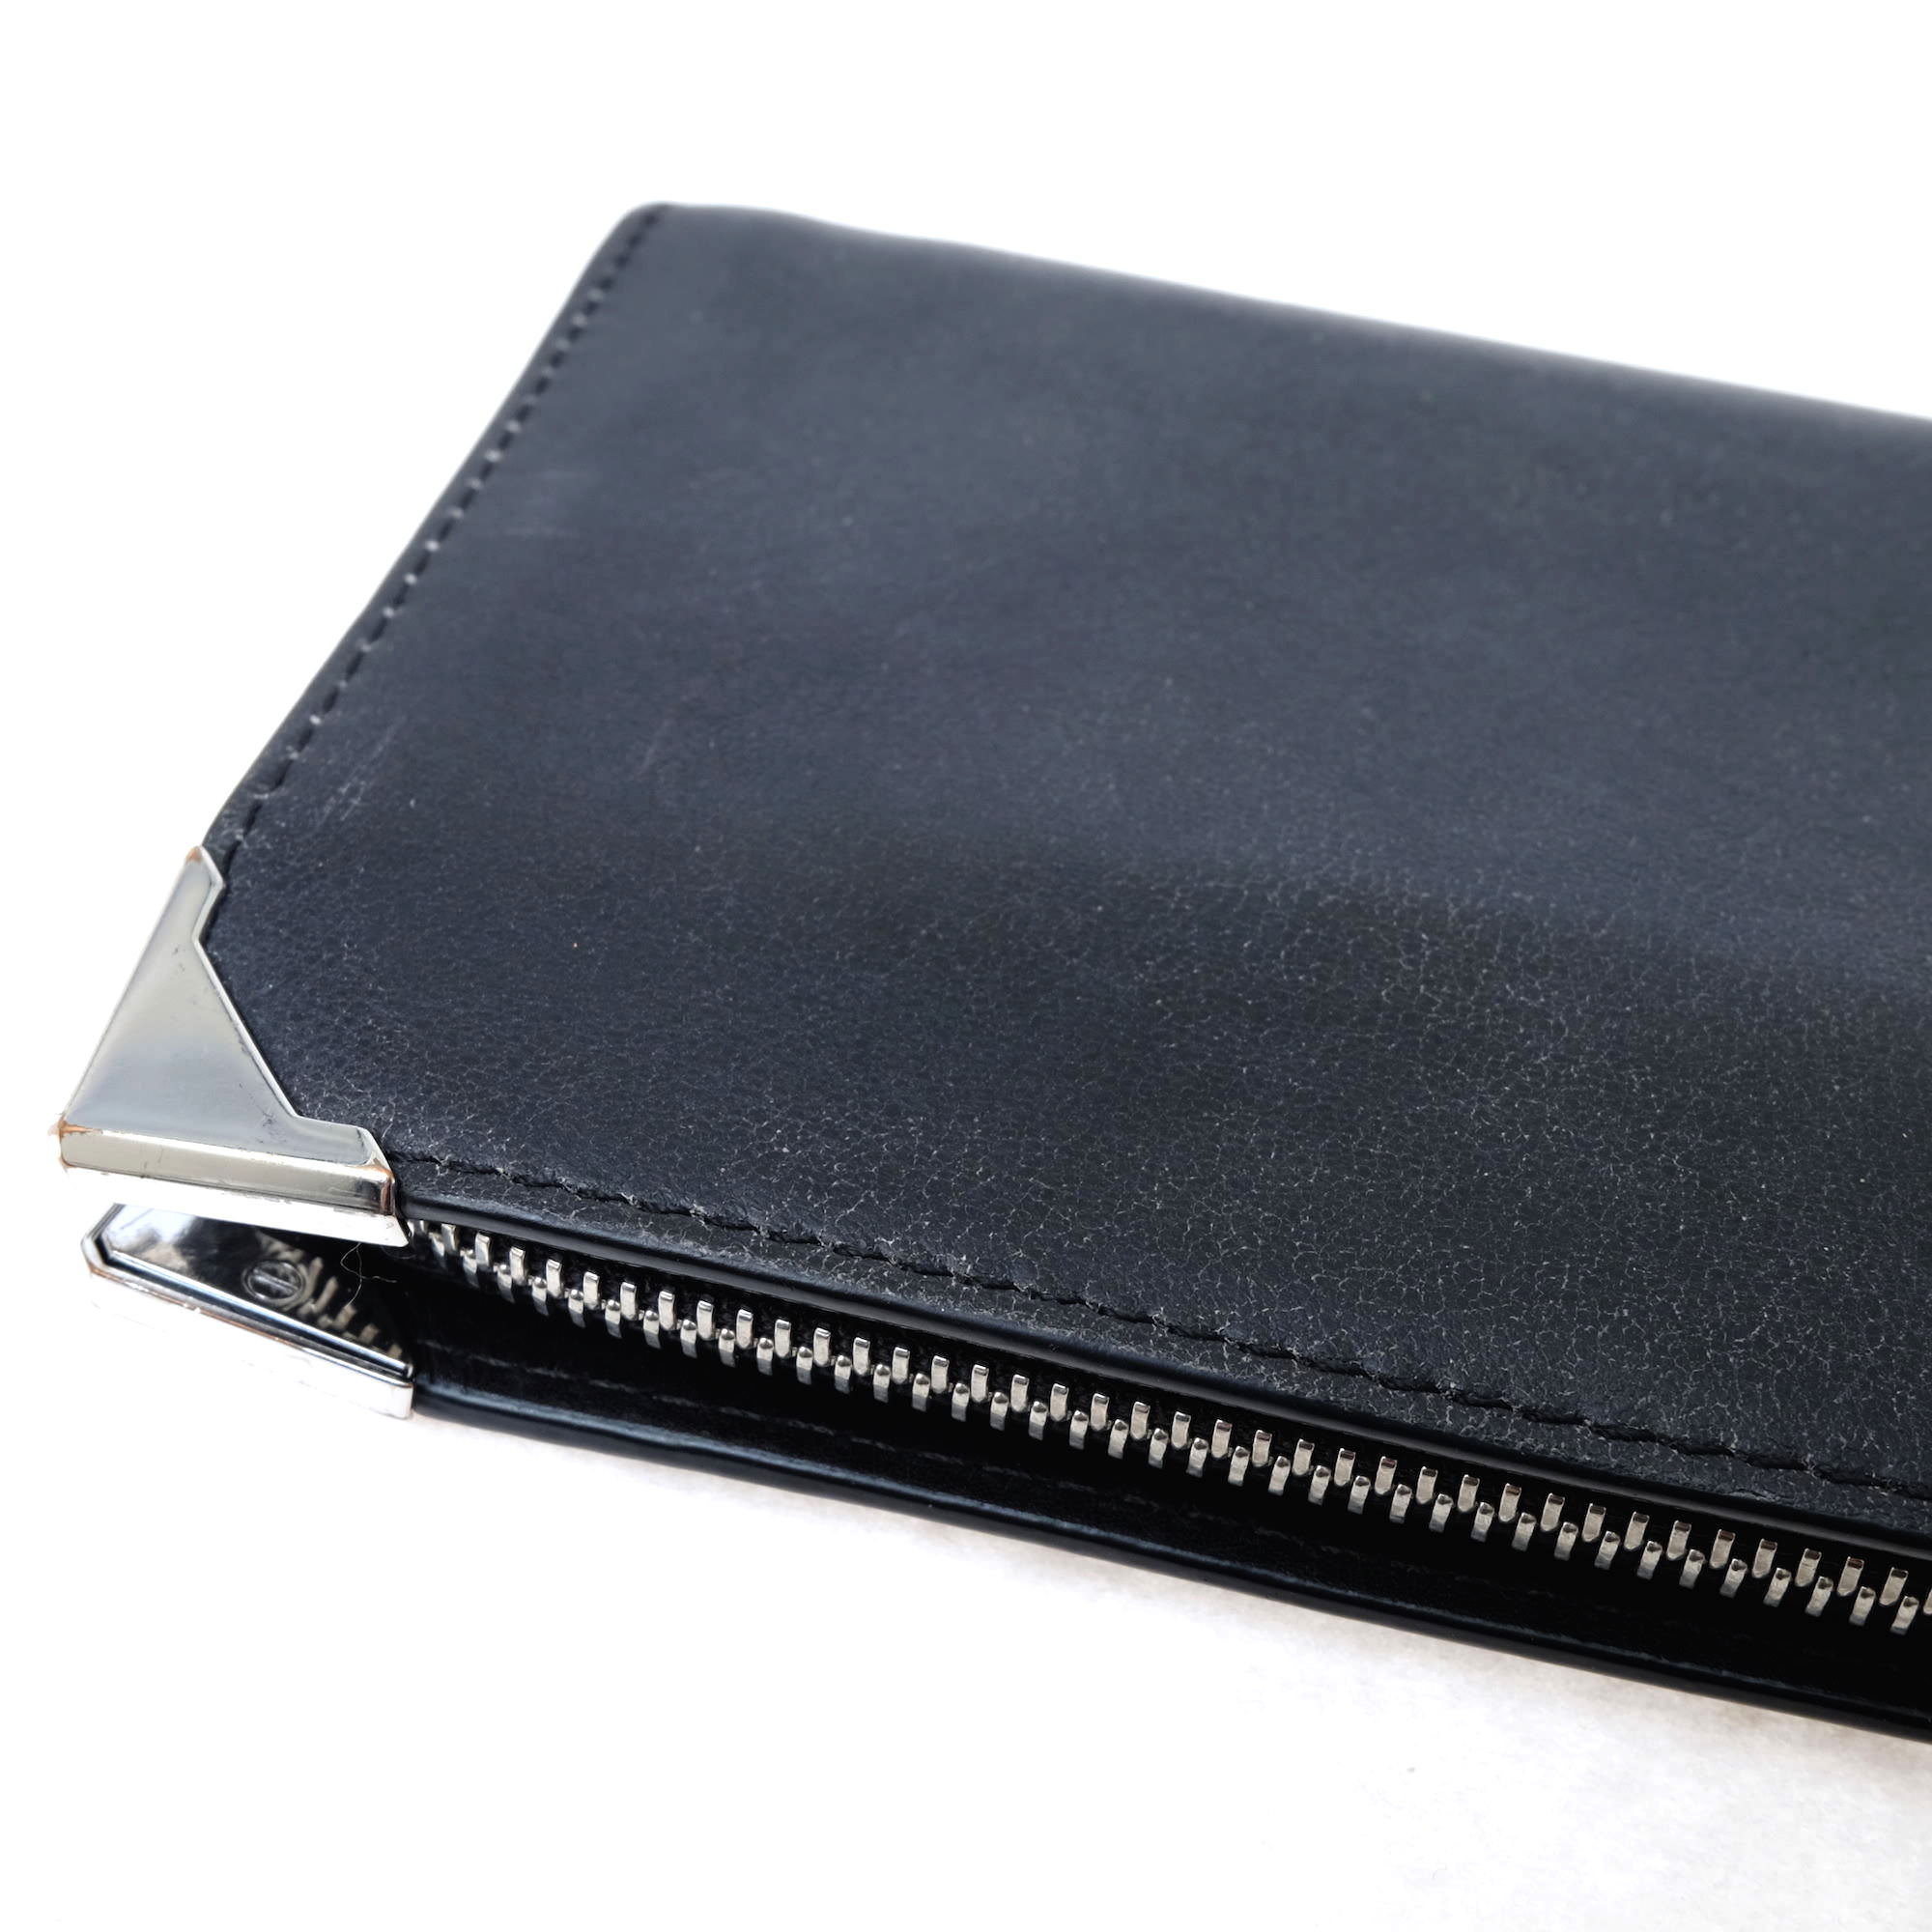 detailing a2714 f3762 アレキサンダーワン / ALEXANDER WANG 長財布 メンズ ブラック 黒 PRISMA SKELETAL LONG COMPACT IN  BLACK Wallets